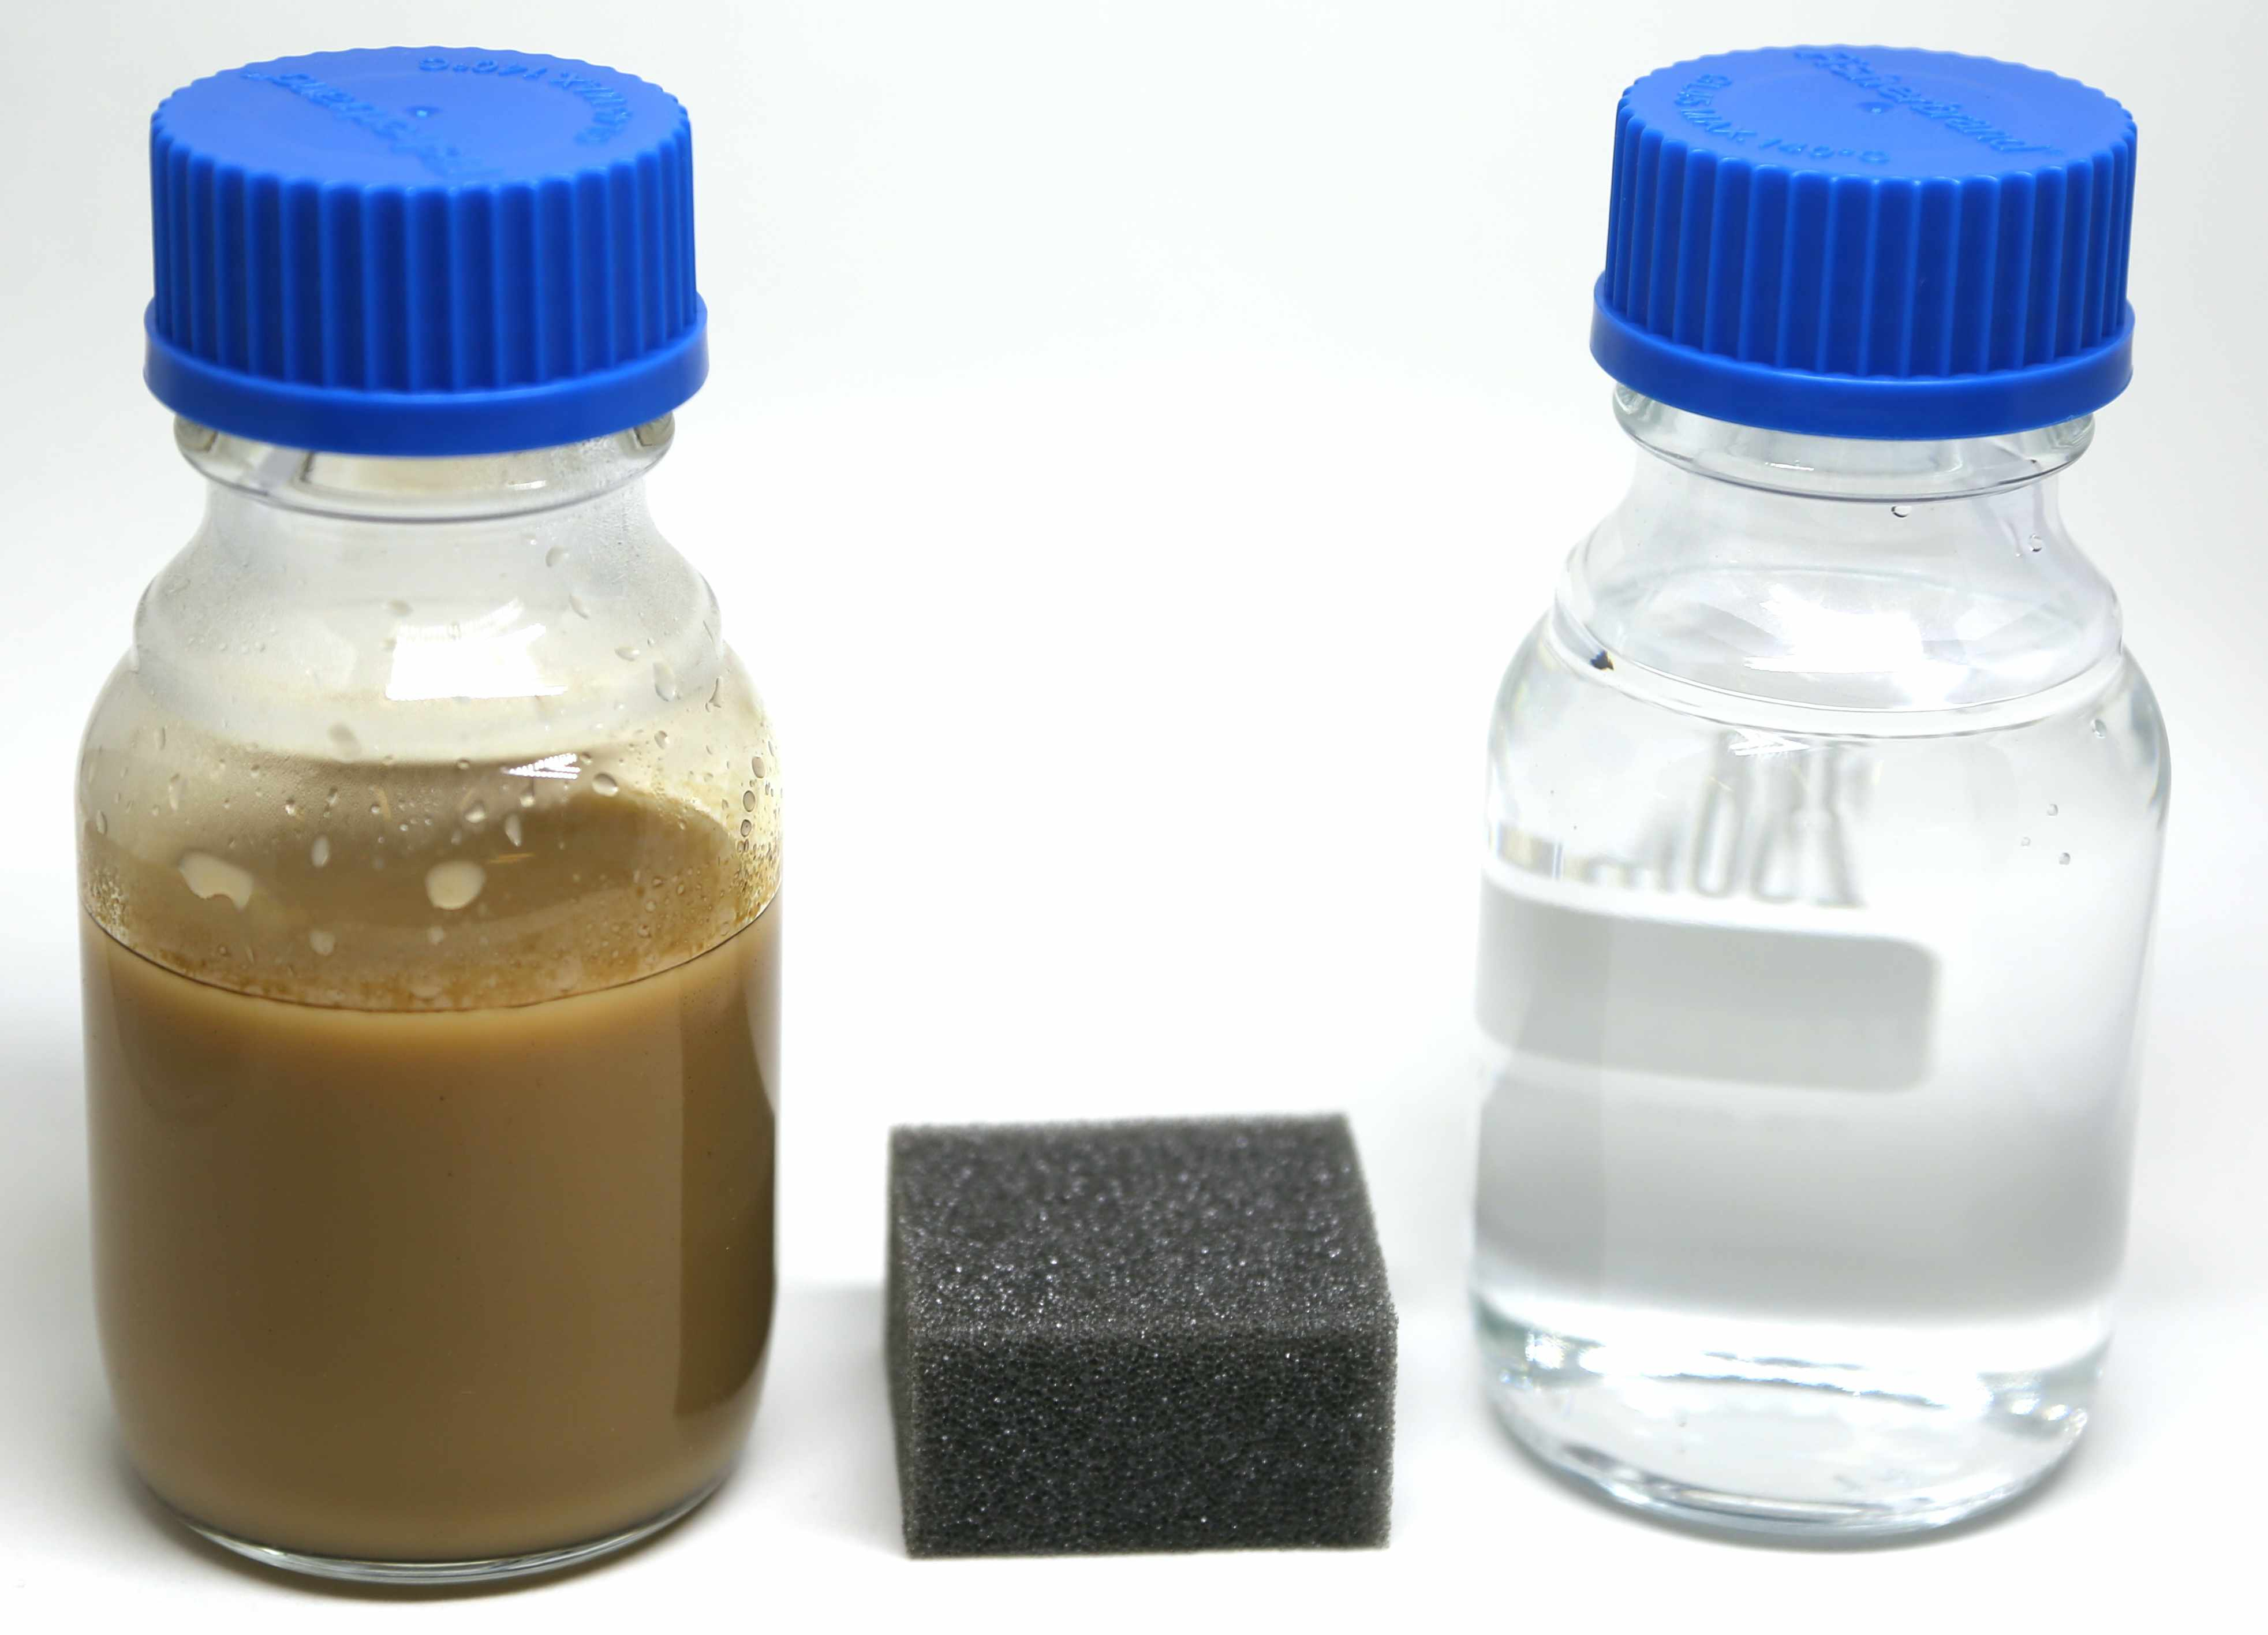 Oily wastewater before and after separation with sponge.